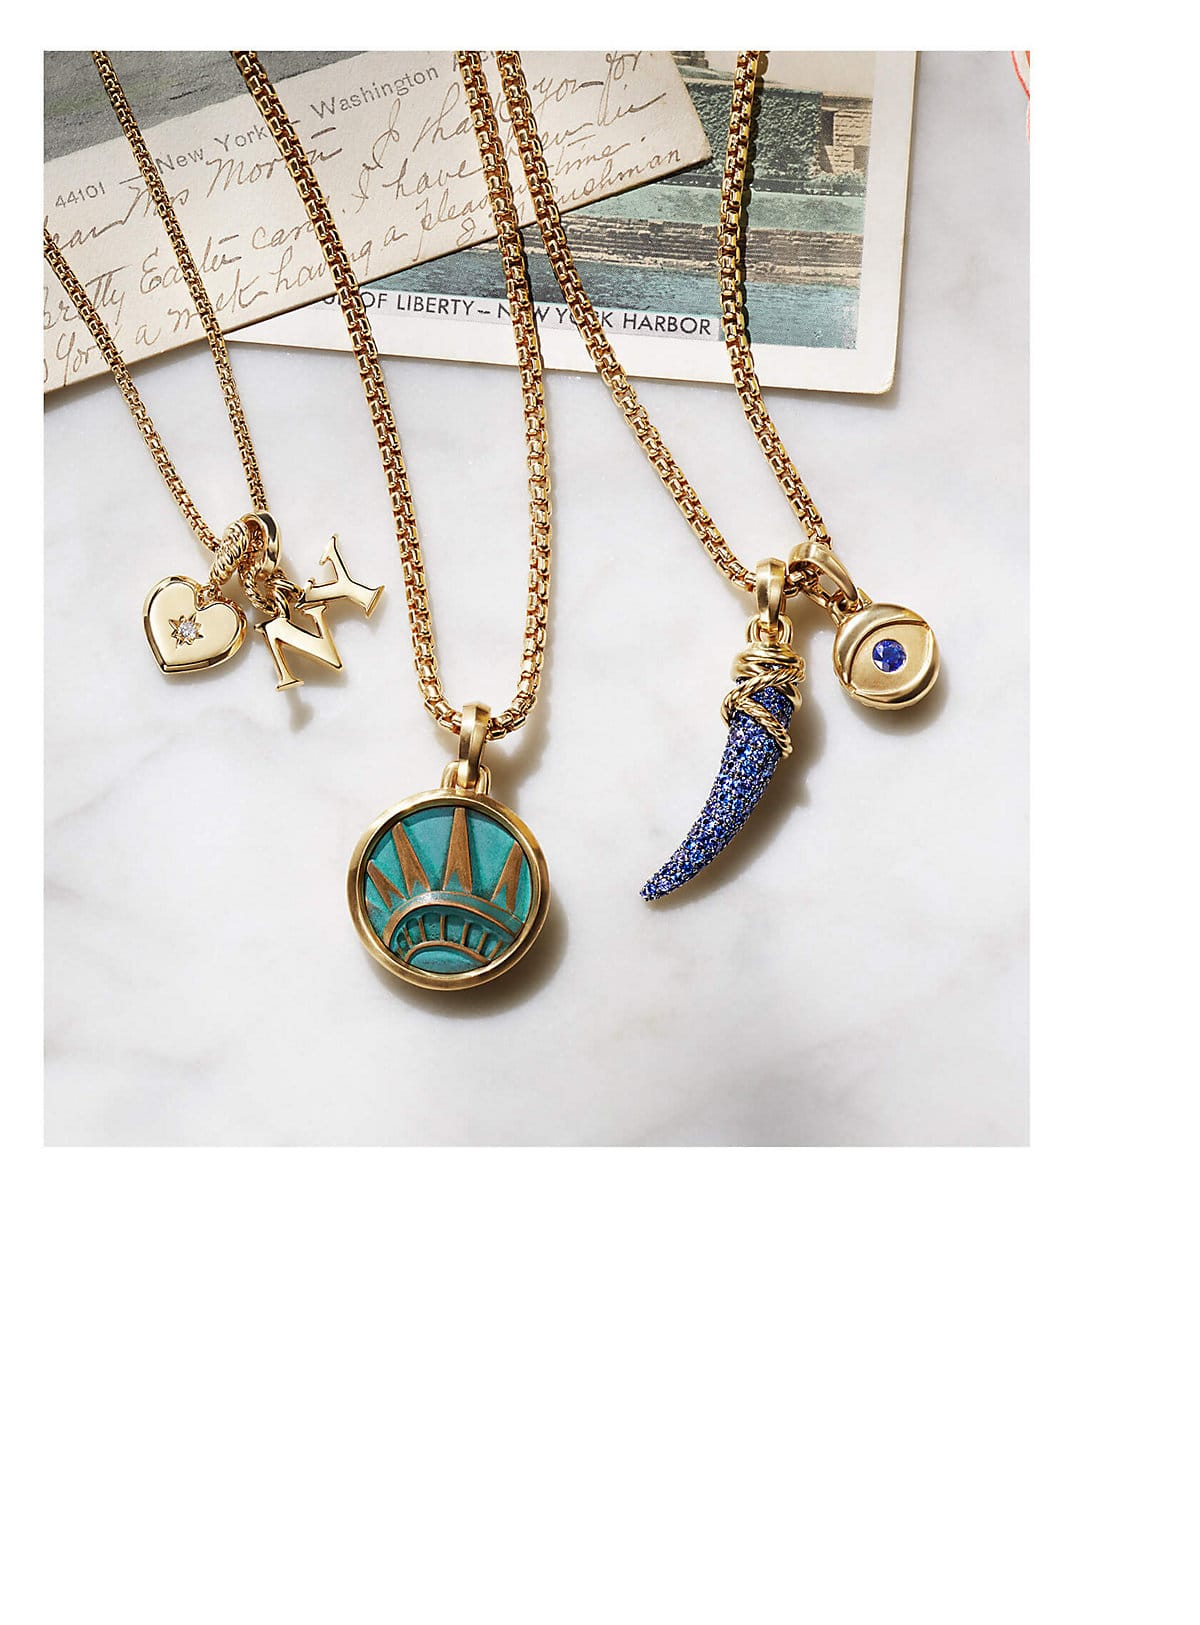 "A color photo shows three David Yurman chain necklaces strung with amulet pendants, all lying on a marble table atop two New York postcards. The women's jewelry is crafted from 18K yellow gold with or without pavé diamonds and sapphires. The pendants come in various shapes such as a heart, dagger, evil eye or ""NY"" initials. One pendant depicts the crown of the Statue of Liberty."